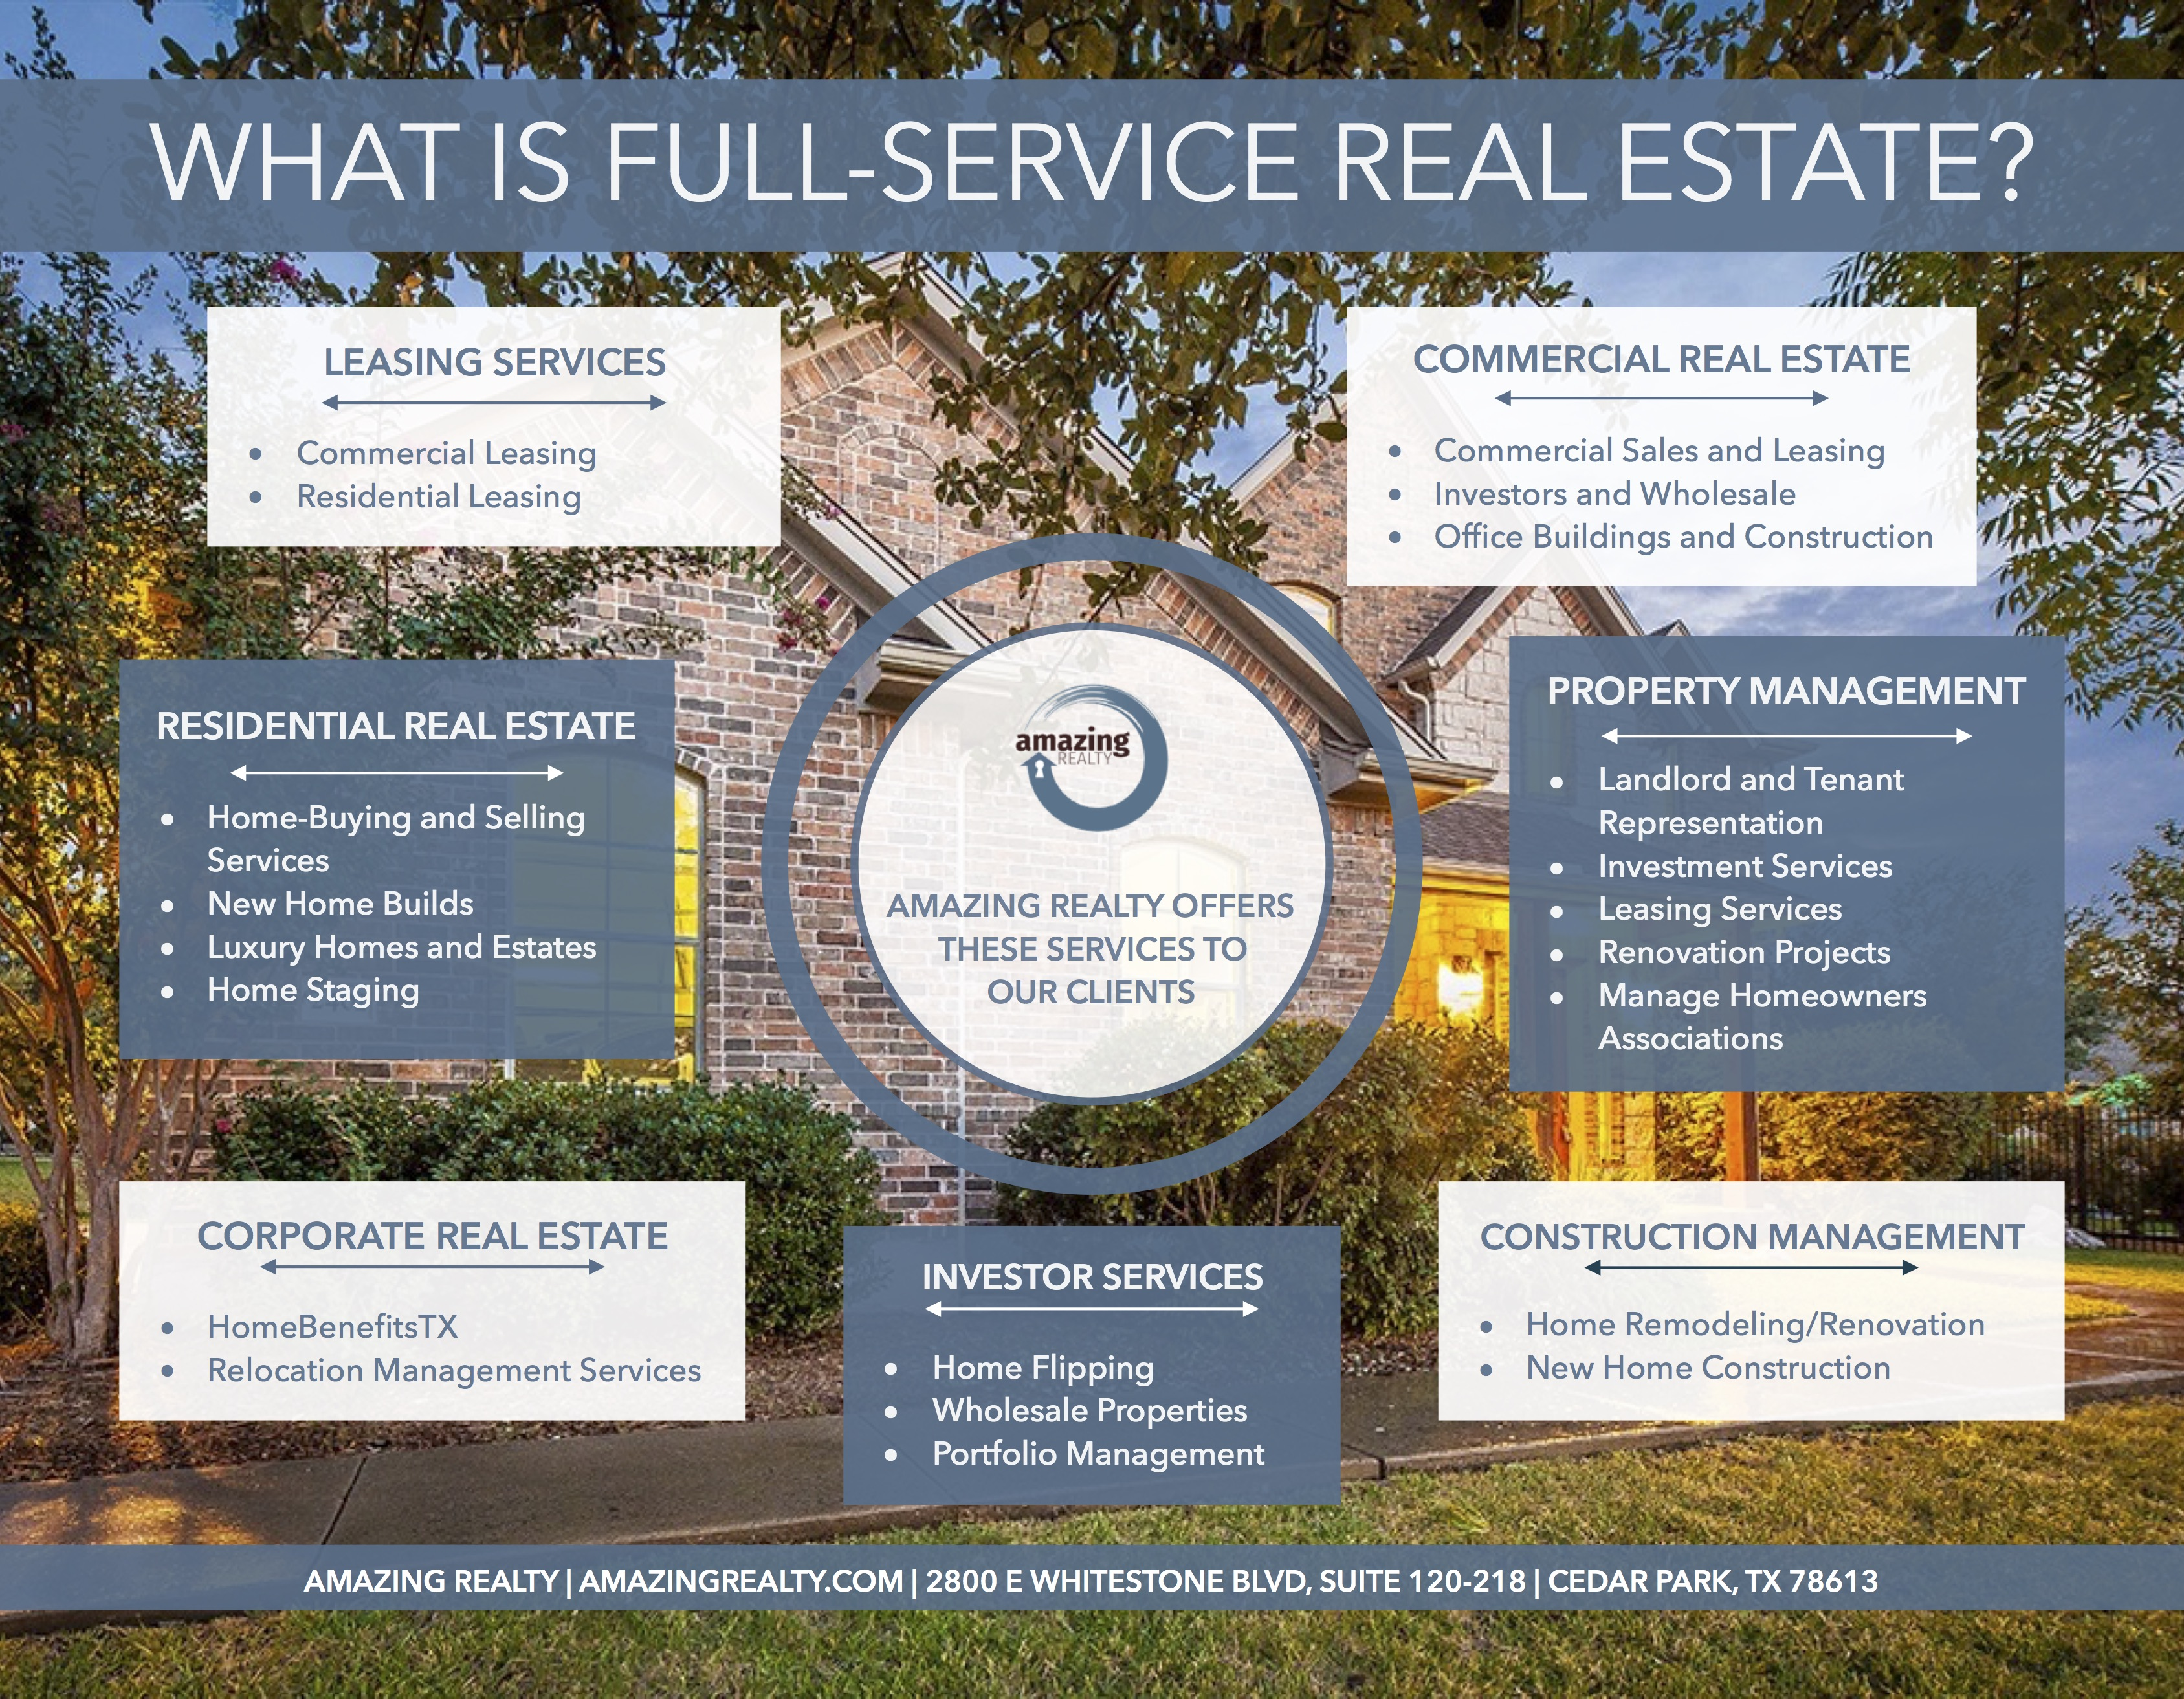 Full-Service Realty Flyer - Amazing Realty by Agent Operations